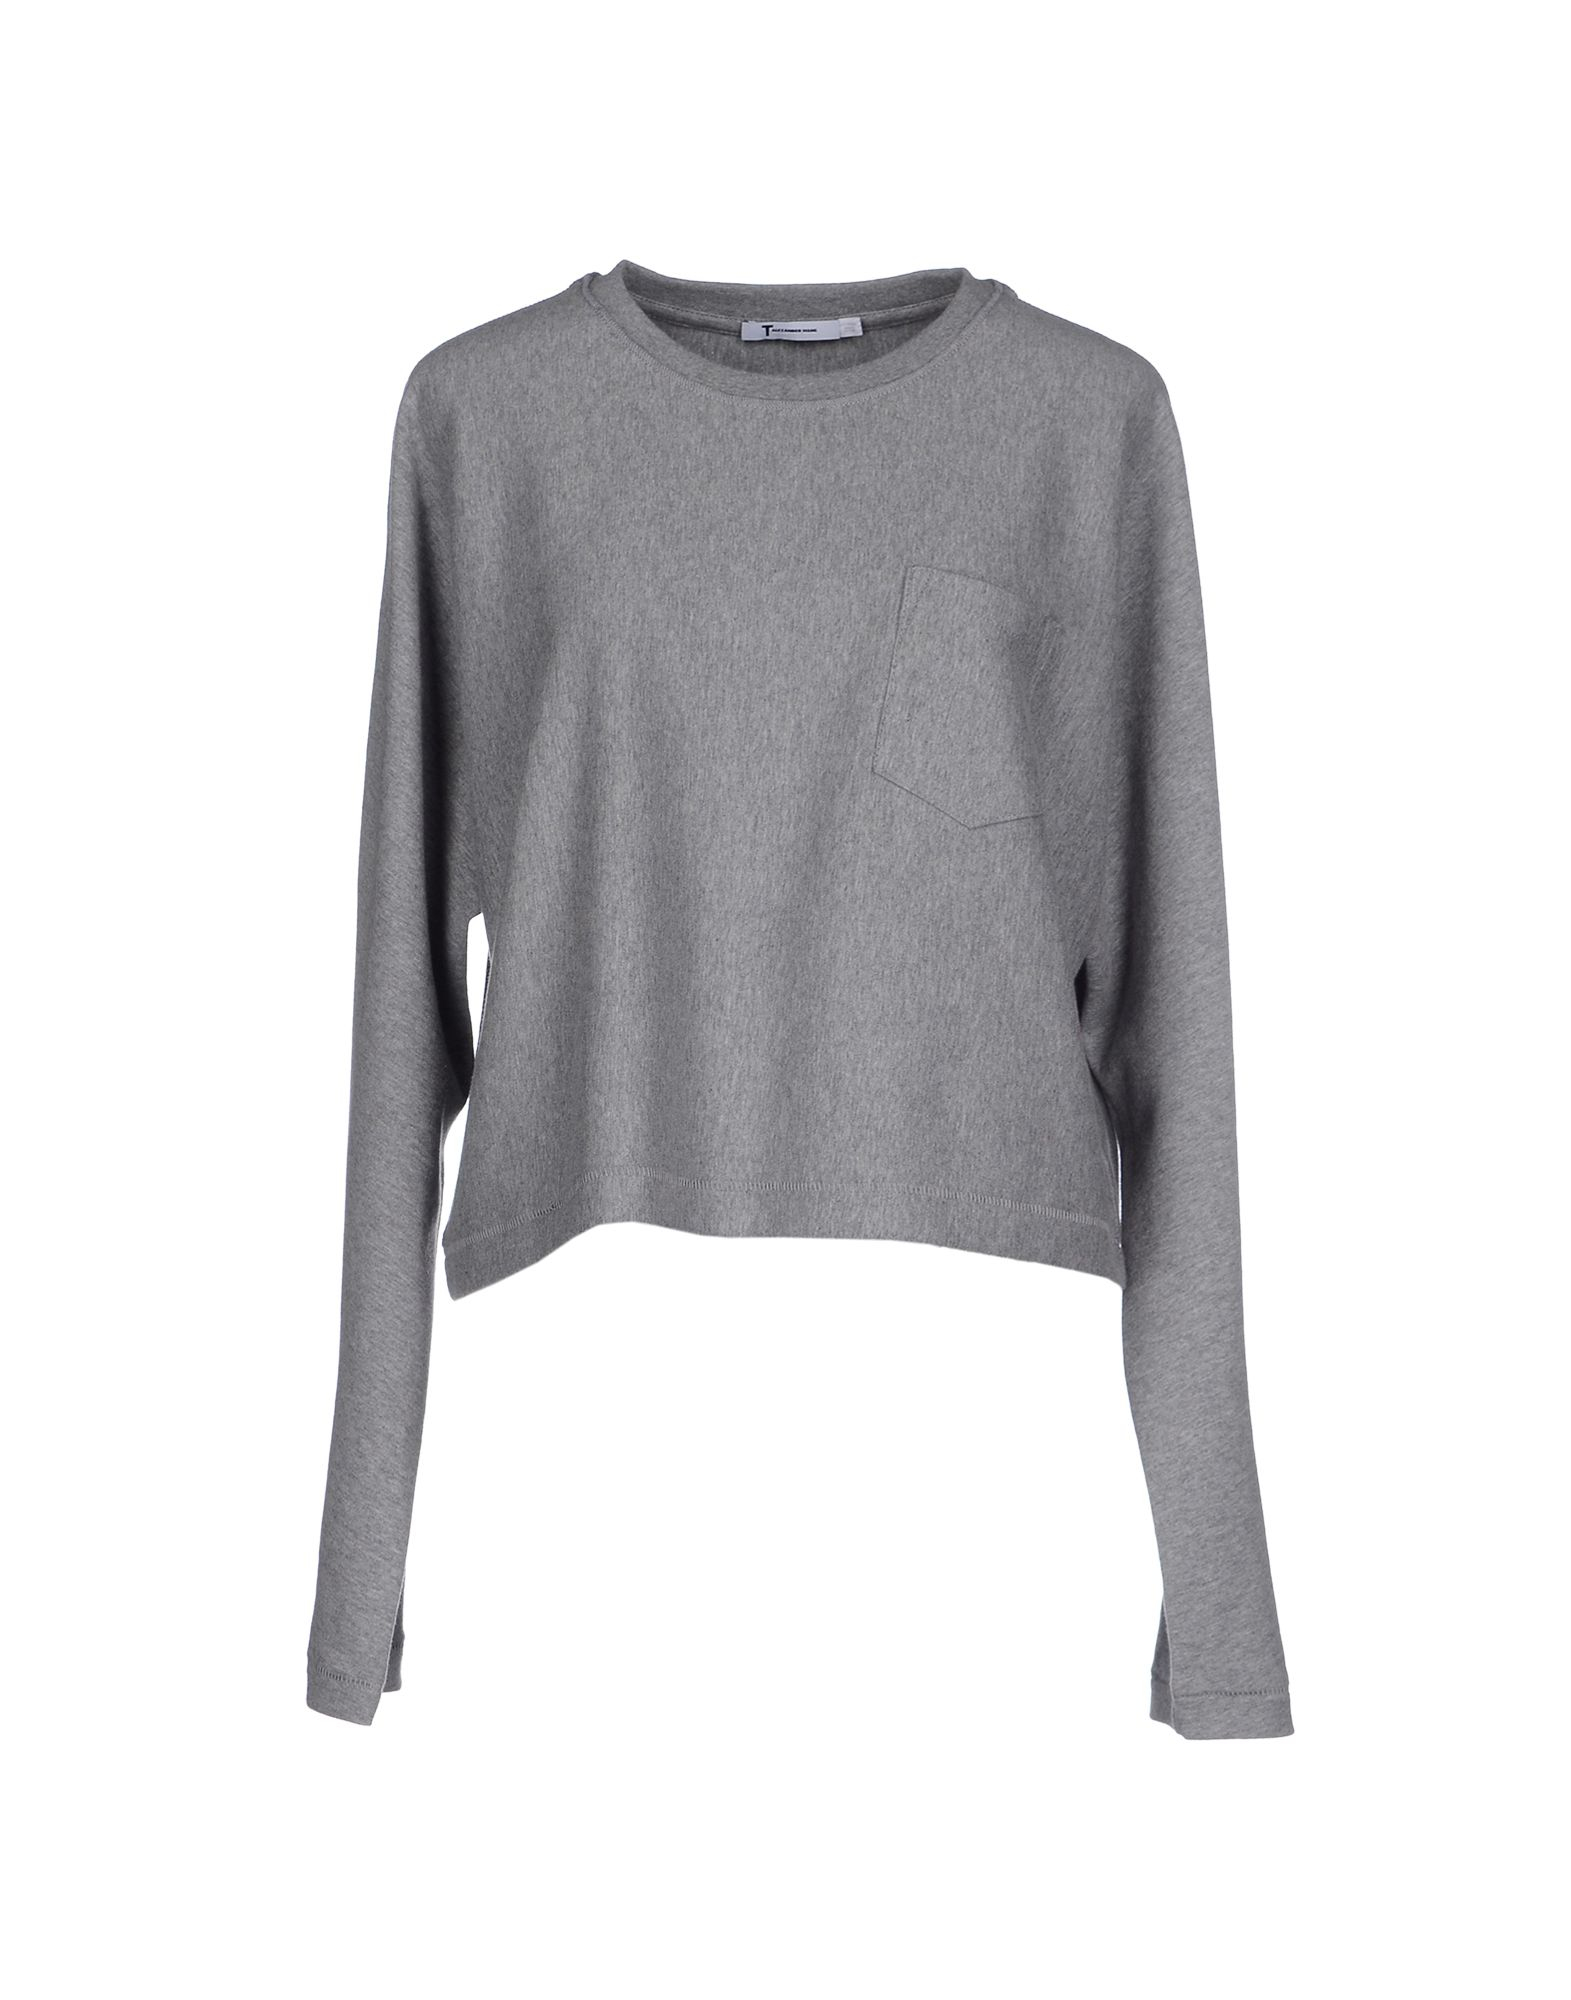 Lyst T By Alexander Wang T Shirt In Gray